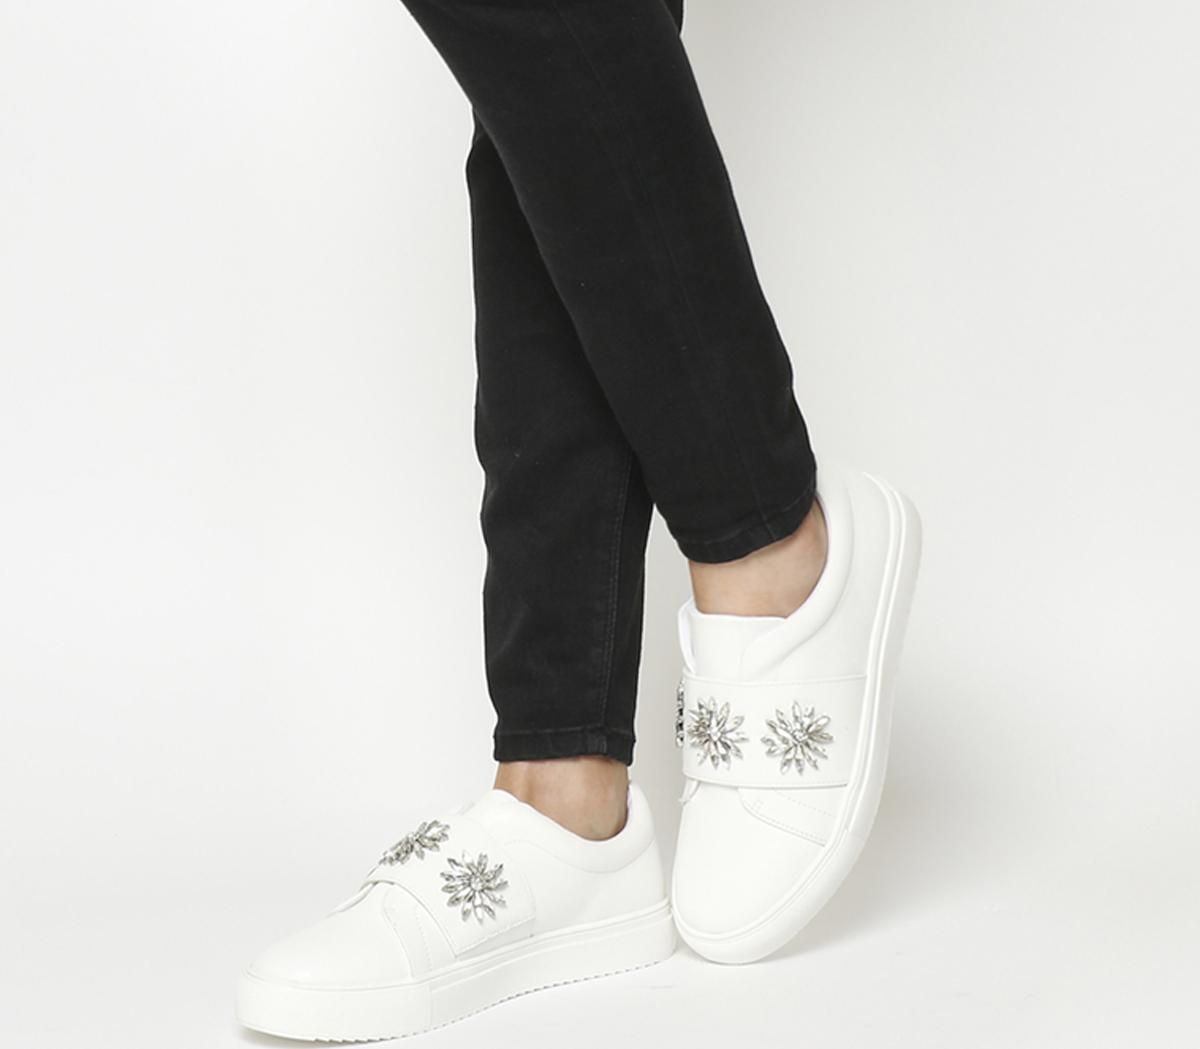 Frozen Embellished Strap Trainers